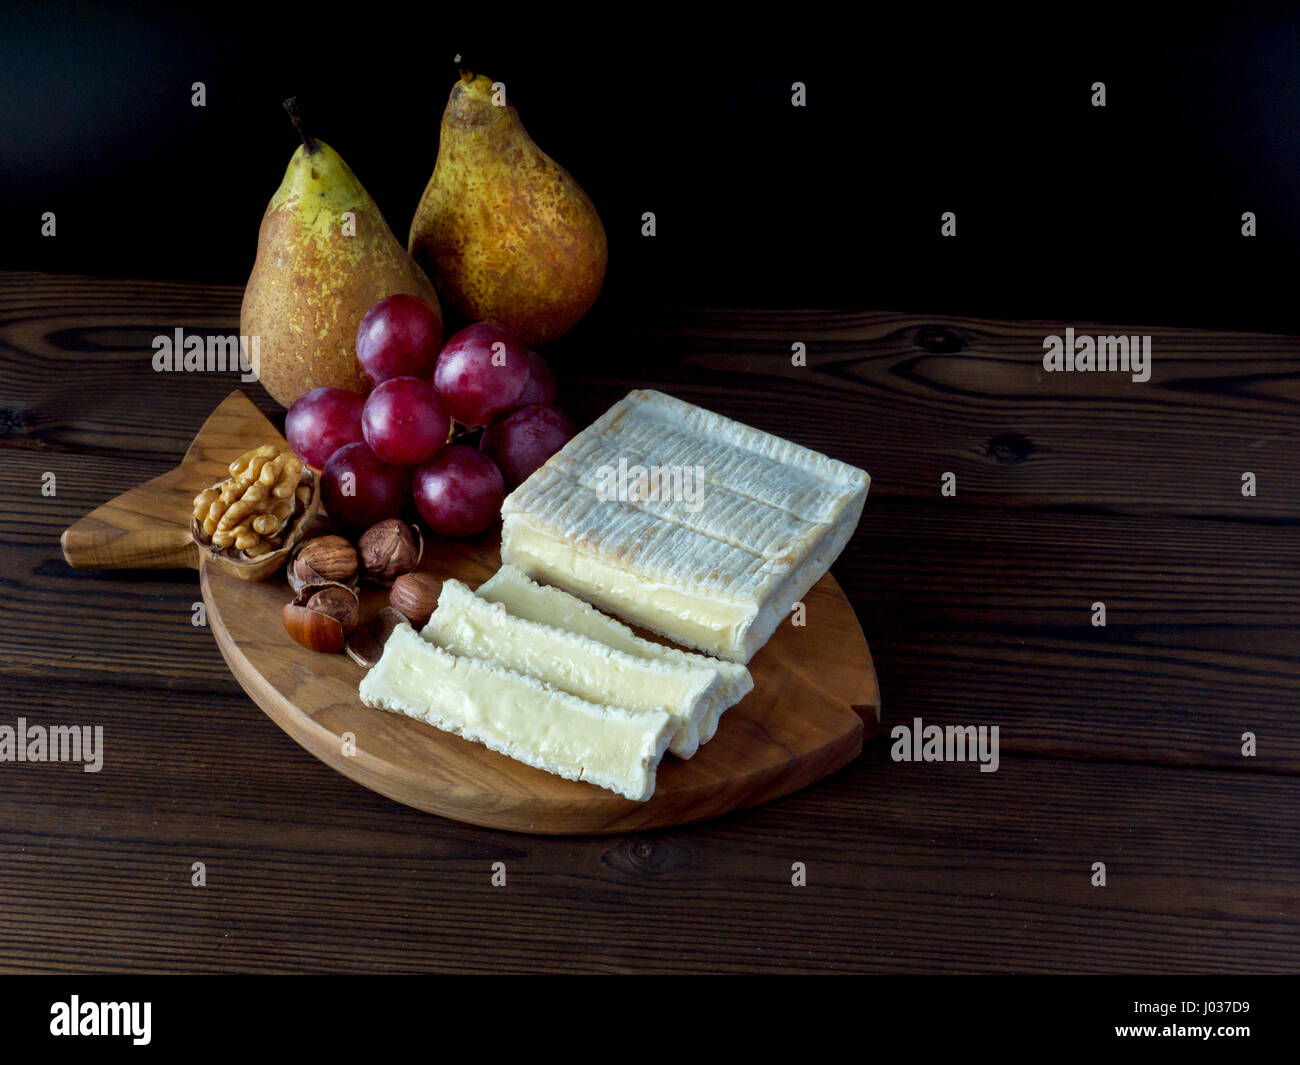 Brick shaped cheese with white mold, hazelnuts, walnut, red grape and pears on the textured wooden board - Stock Image